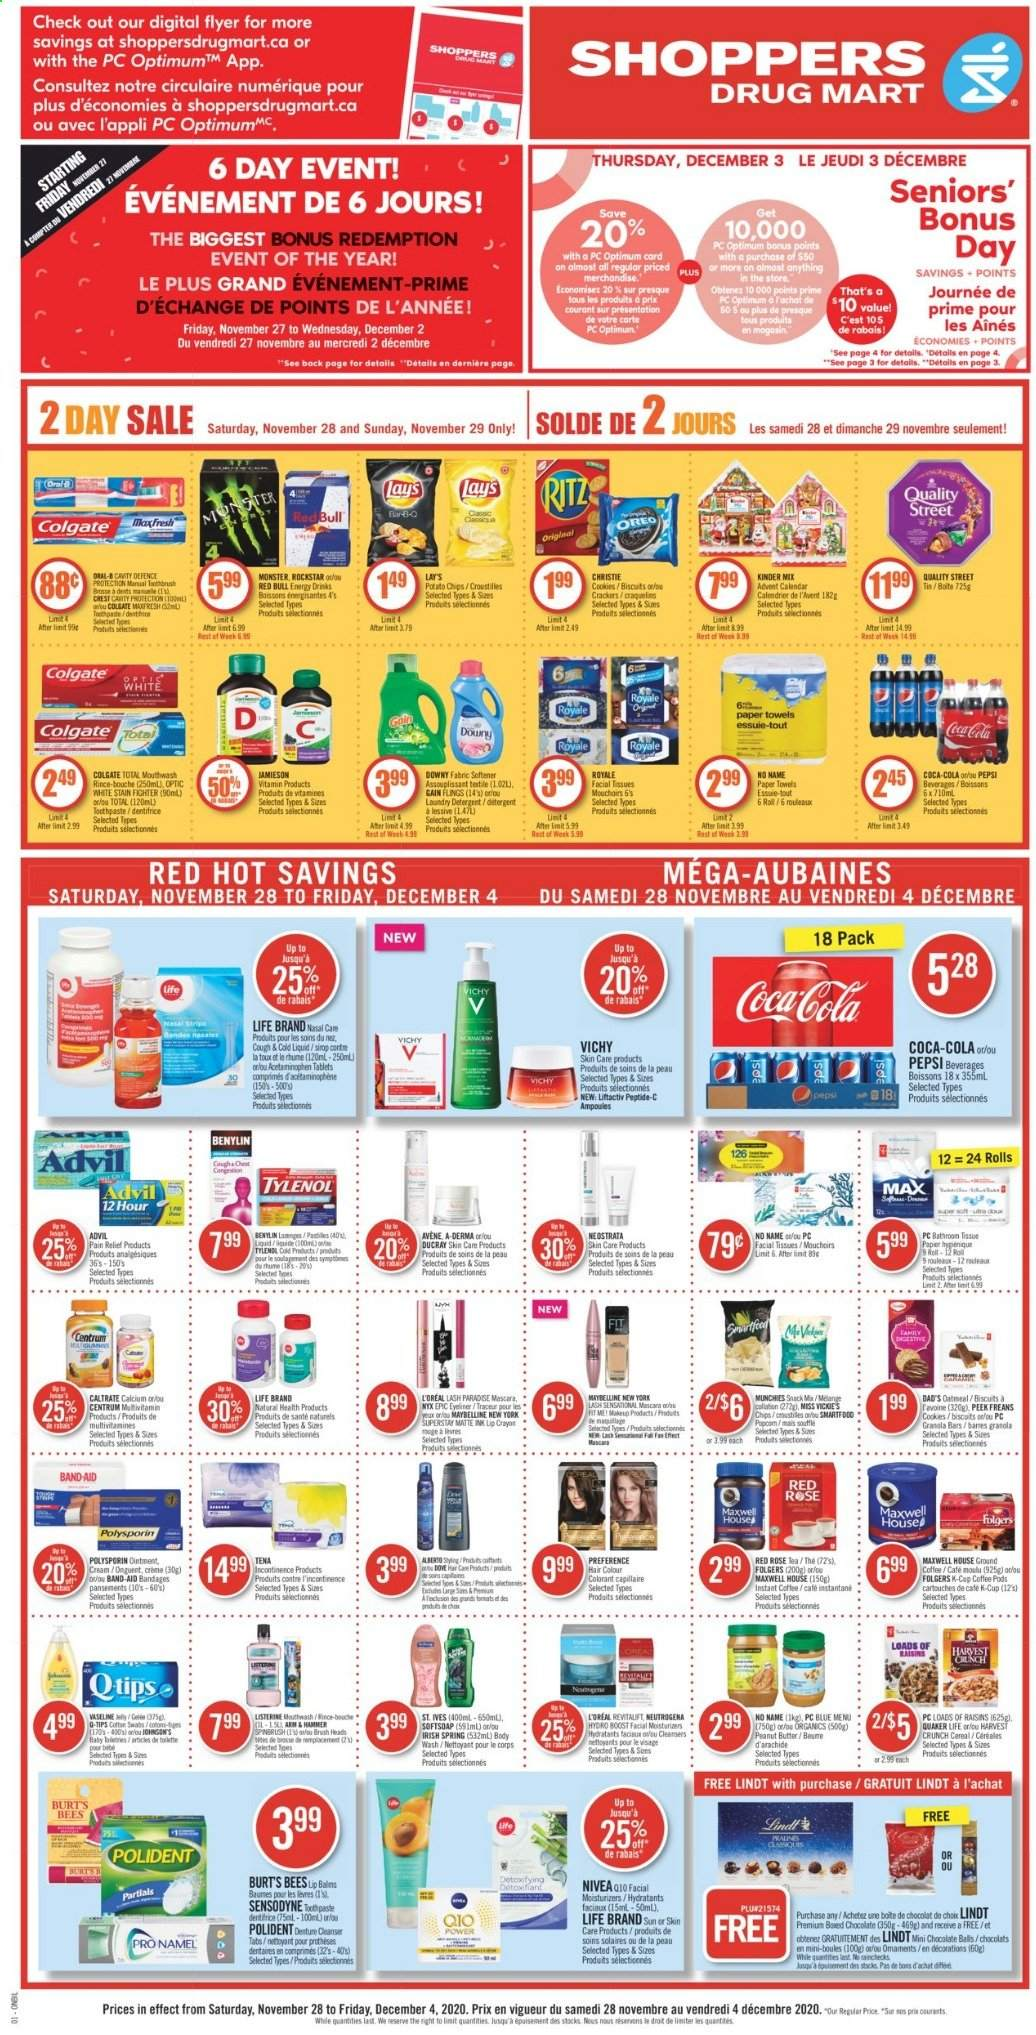 Shoppers Drug Mart Flyer - November 28, 2020 - December 04, 2020 - Sales products - advil, band-aid, biscuits, body wash, brush, butter, calcium, calendar, cereals, cleanser, Coca-Cola, coffee pods, cookies, detergent, Dove, Downy, Colgate, facial tissues, Gain, granola, granola bars, L'Oréal, LG, lip crayon, Listerine, mascara, Maxwell House, Maybelline, moisturizer, multivitamin, Neutrogena, raisins, Softsoap, Tylenol, Vichy, potato chips, Pain Relief, paper towel, peanut butter, peanuts, Pepsi, Nivea, oatmeal, ointment, Oreo, Oral-b, chips, chocolate, toothpaste, snack, hammer, softener, monster, Lay's, Sensodyne, Lindt, mouthwash, tissues, rolls, Tablets, laundry detergent, Folgers, ground coffee. Page 1.